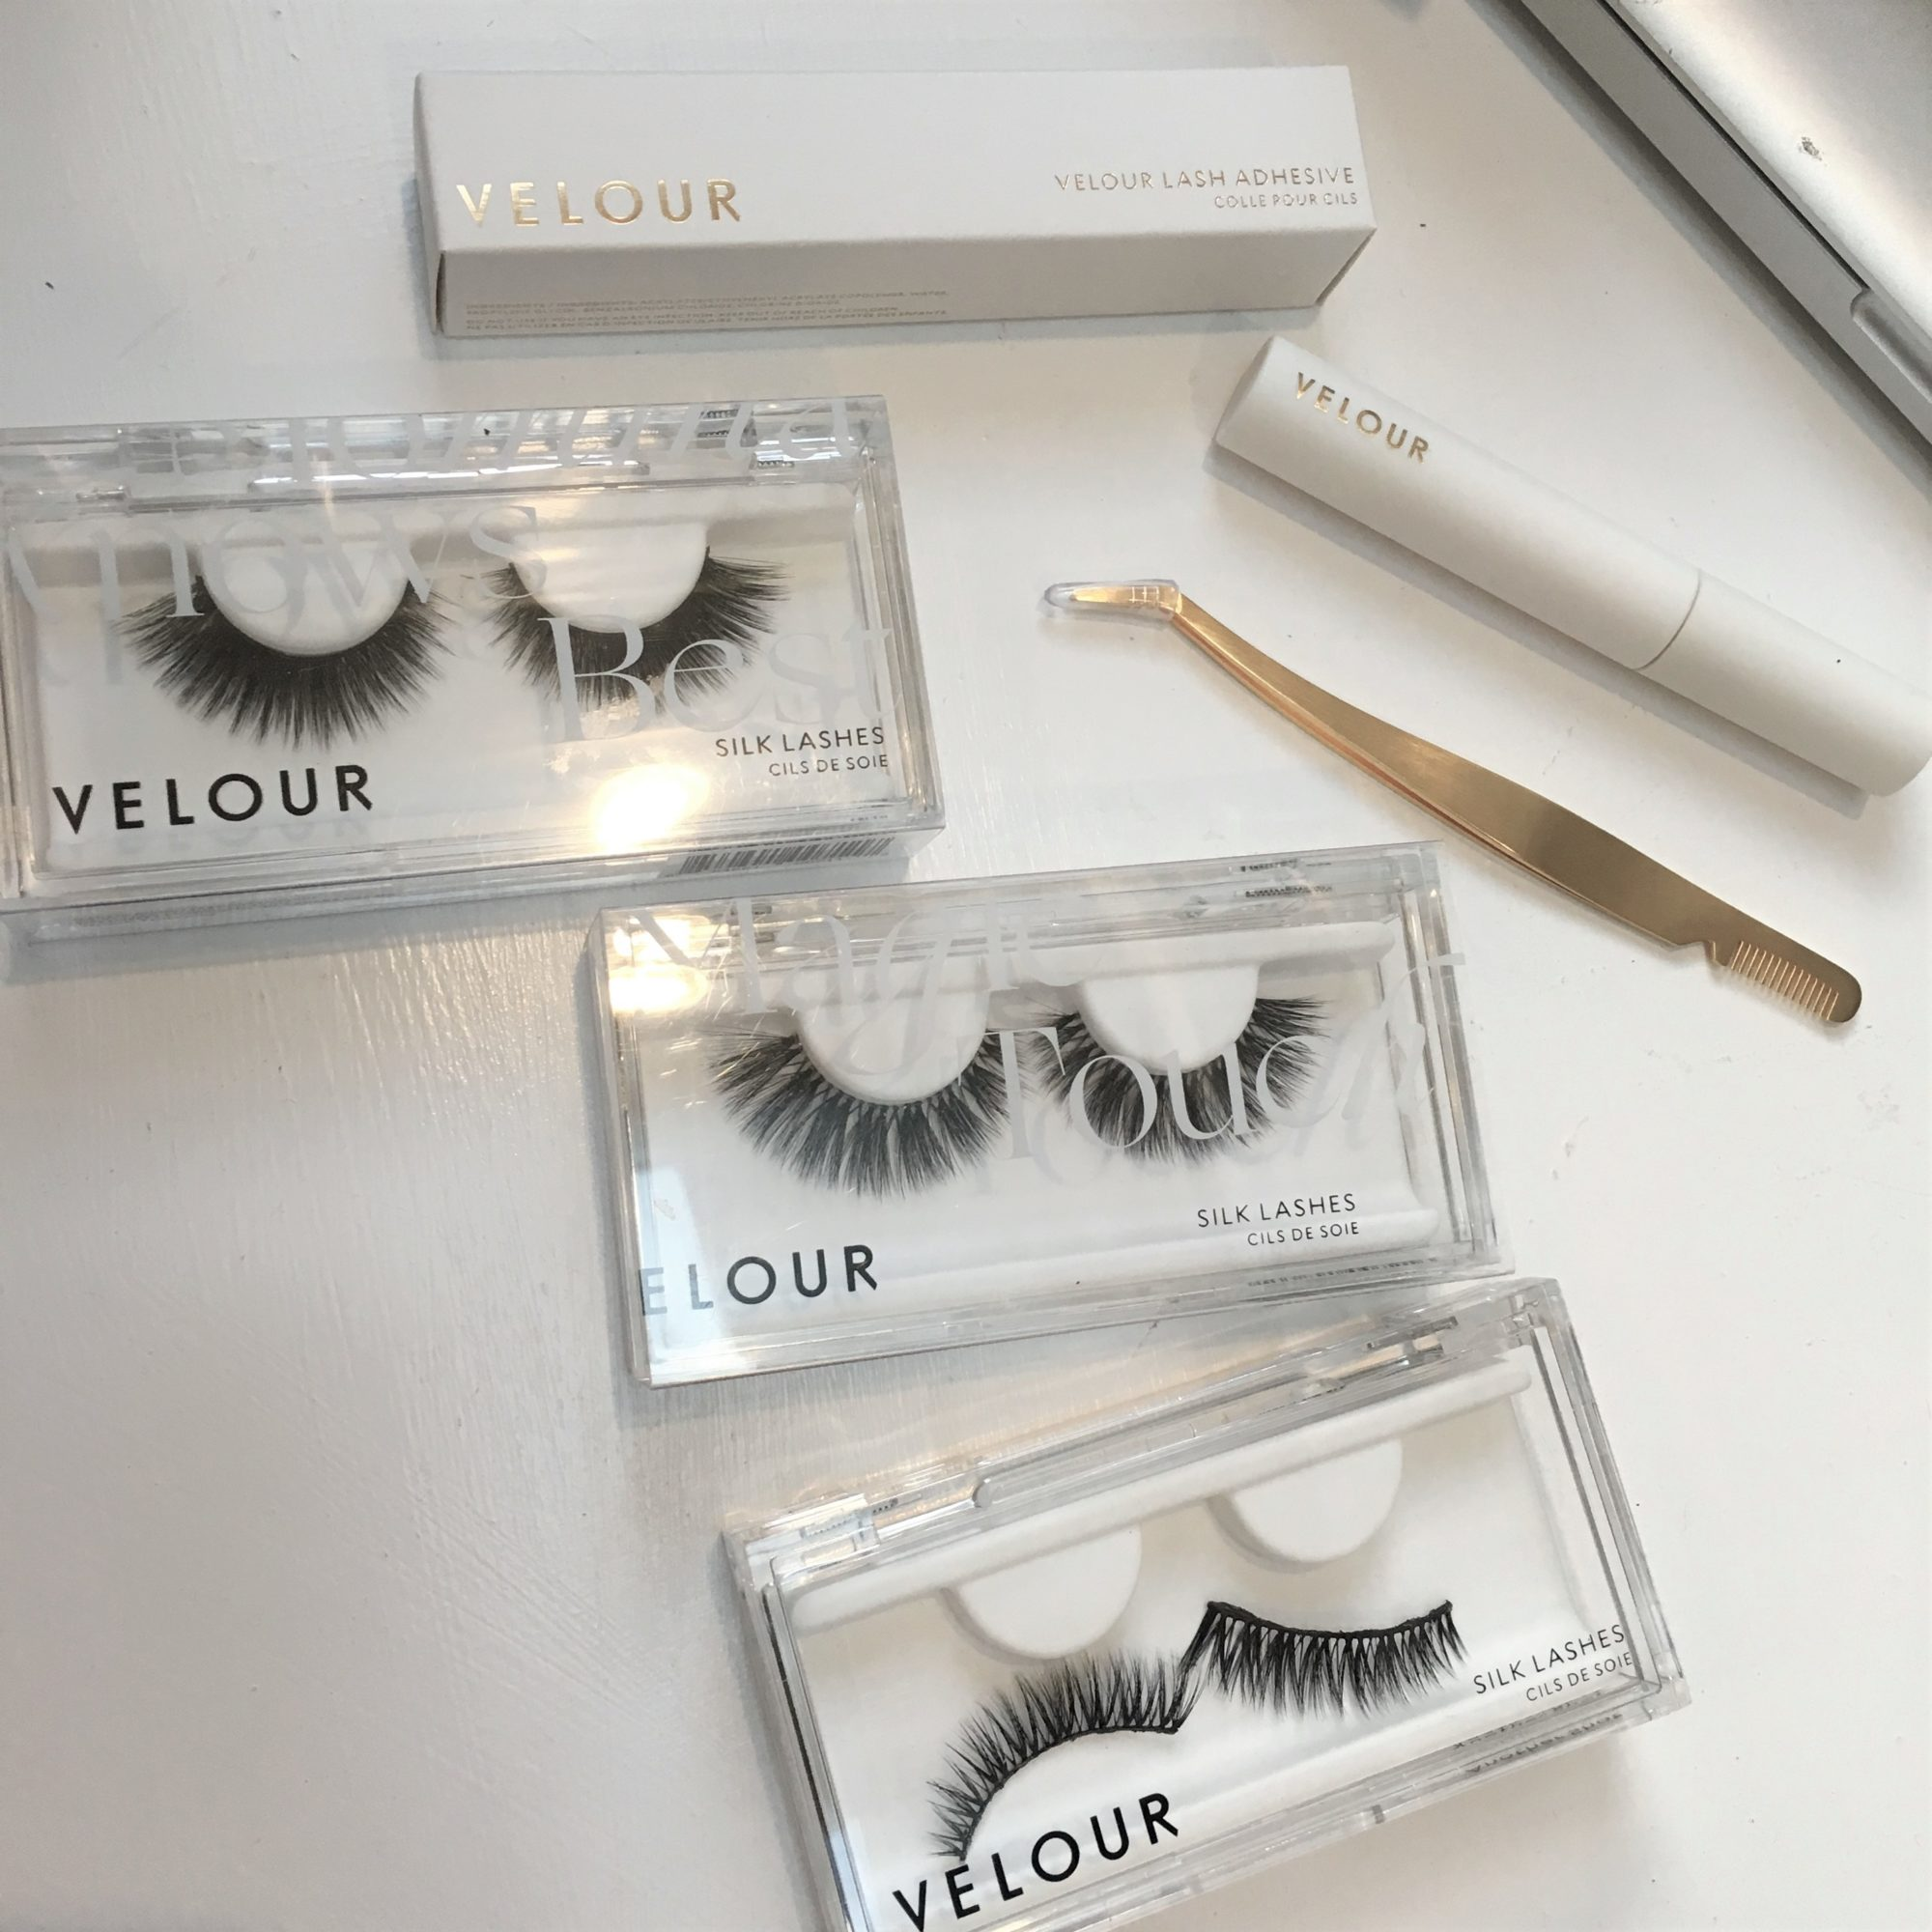 904cb38c9c8 Velour Lashes REVIEW + EVENT - Live in Lashes [BEAUTY]